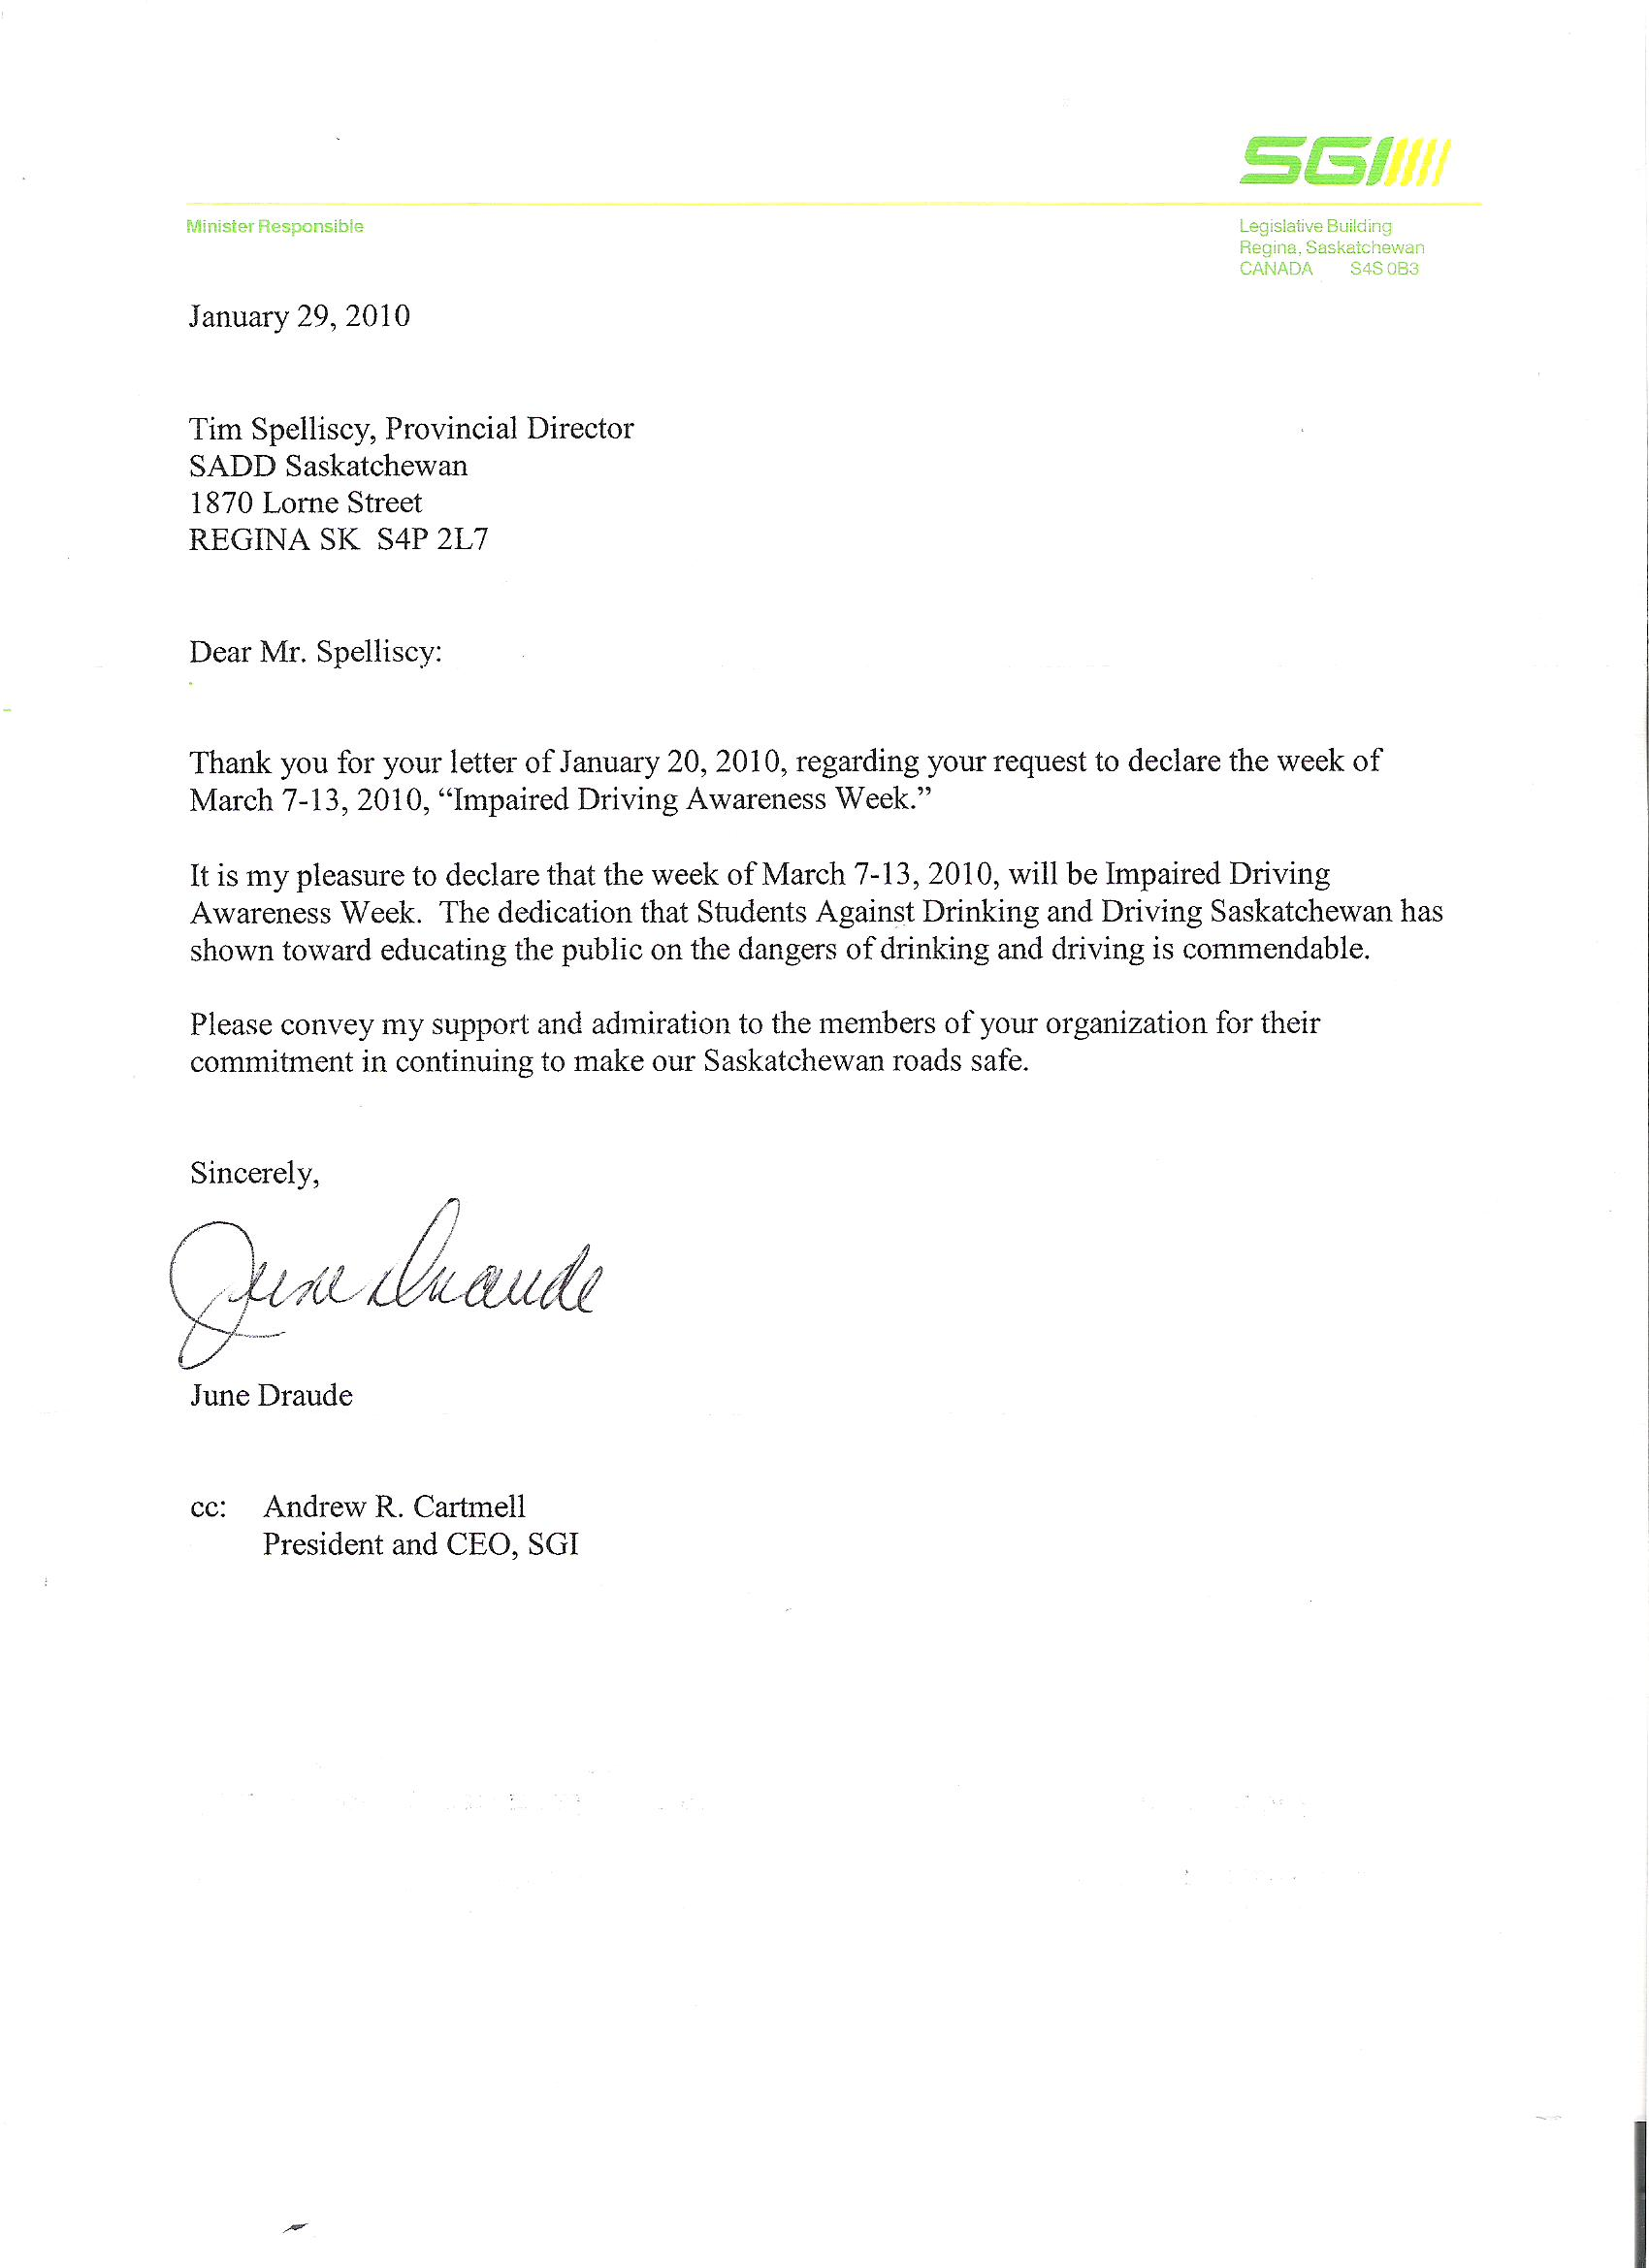 students against drinking driving saskatchewan inc declaration middot letter from hon draude